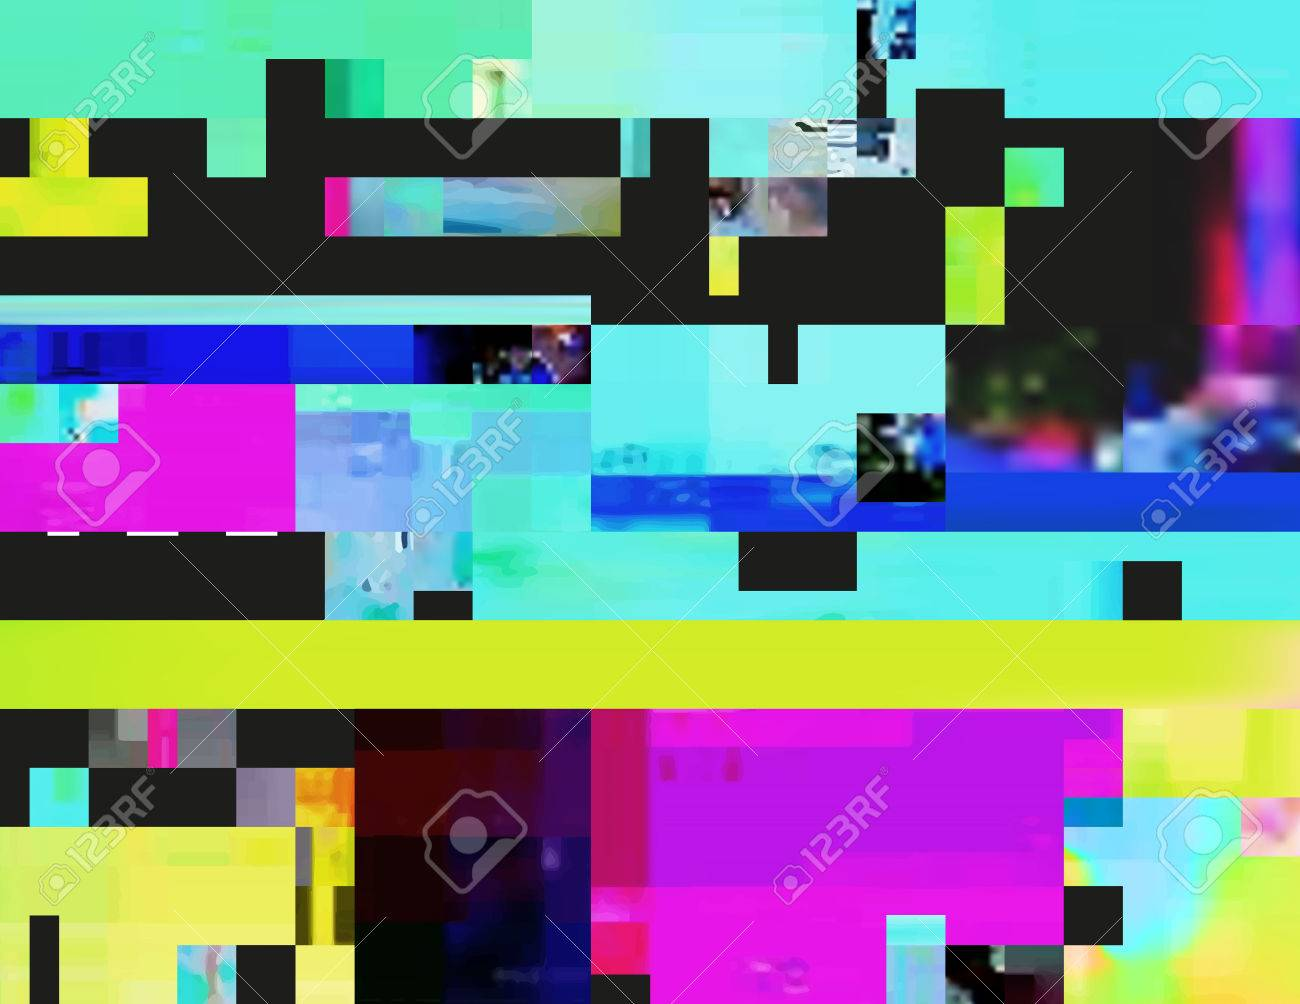 Glitch Background In The Rave Aesthetic Random Digital Signal